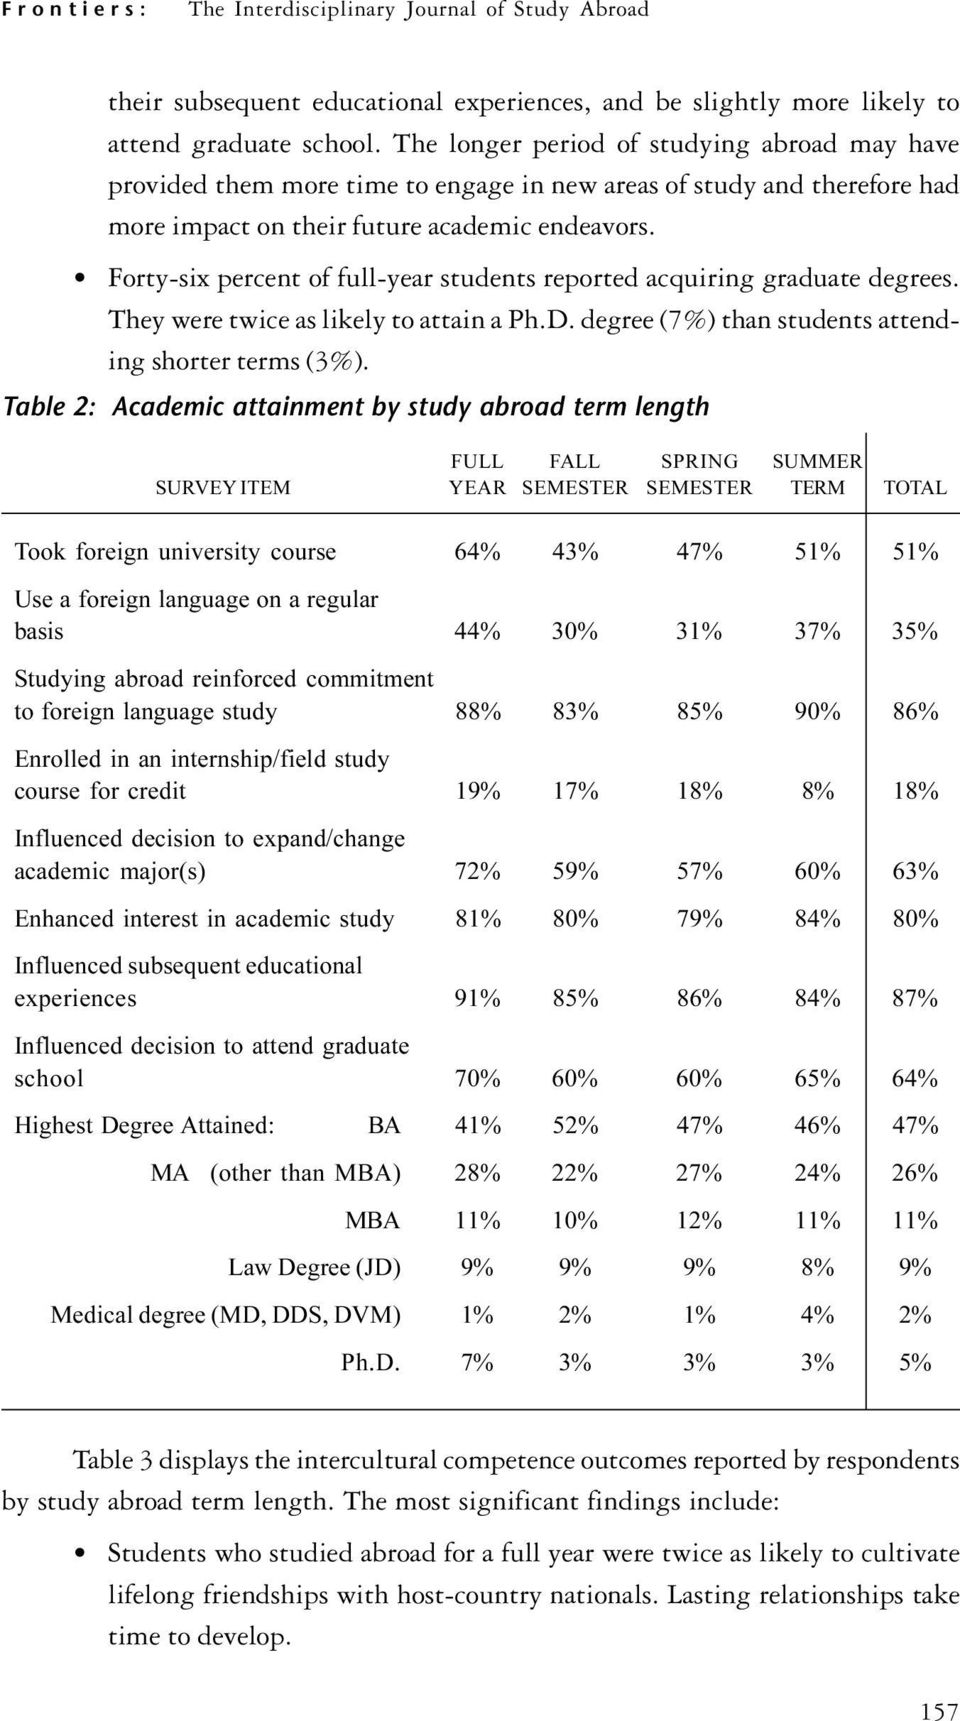 Forty-six percent of full-year students reported acquiring graduate degrees. They were twice as likely to attain a Ph.D. degree (7%) than students attending shorter terms (3%).